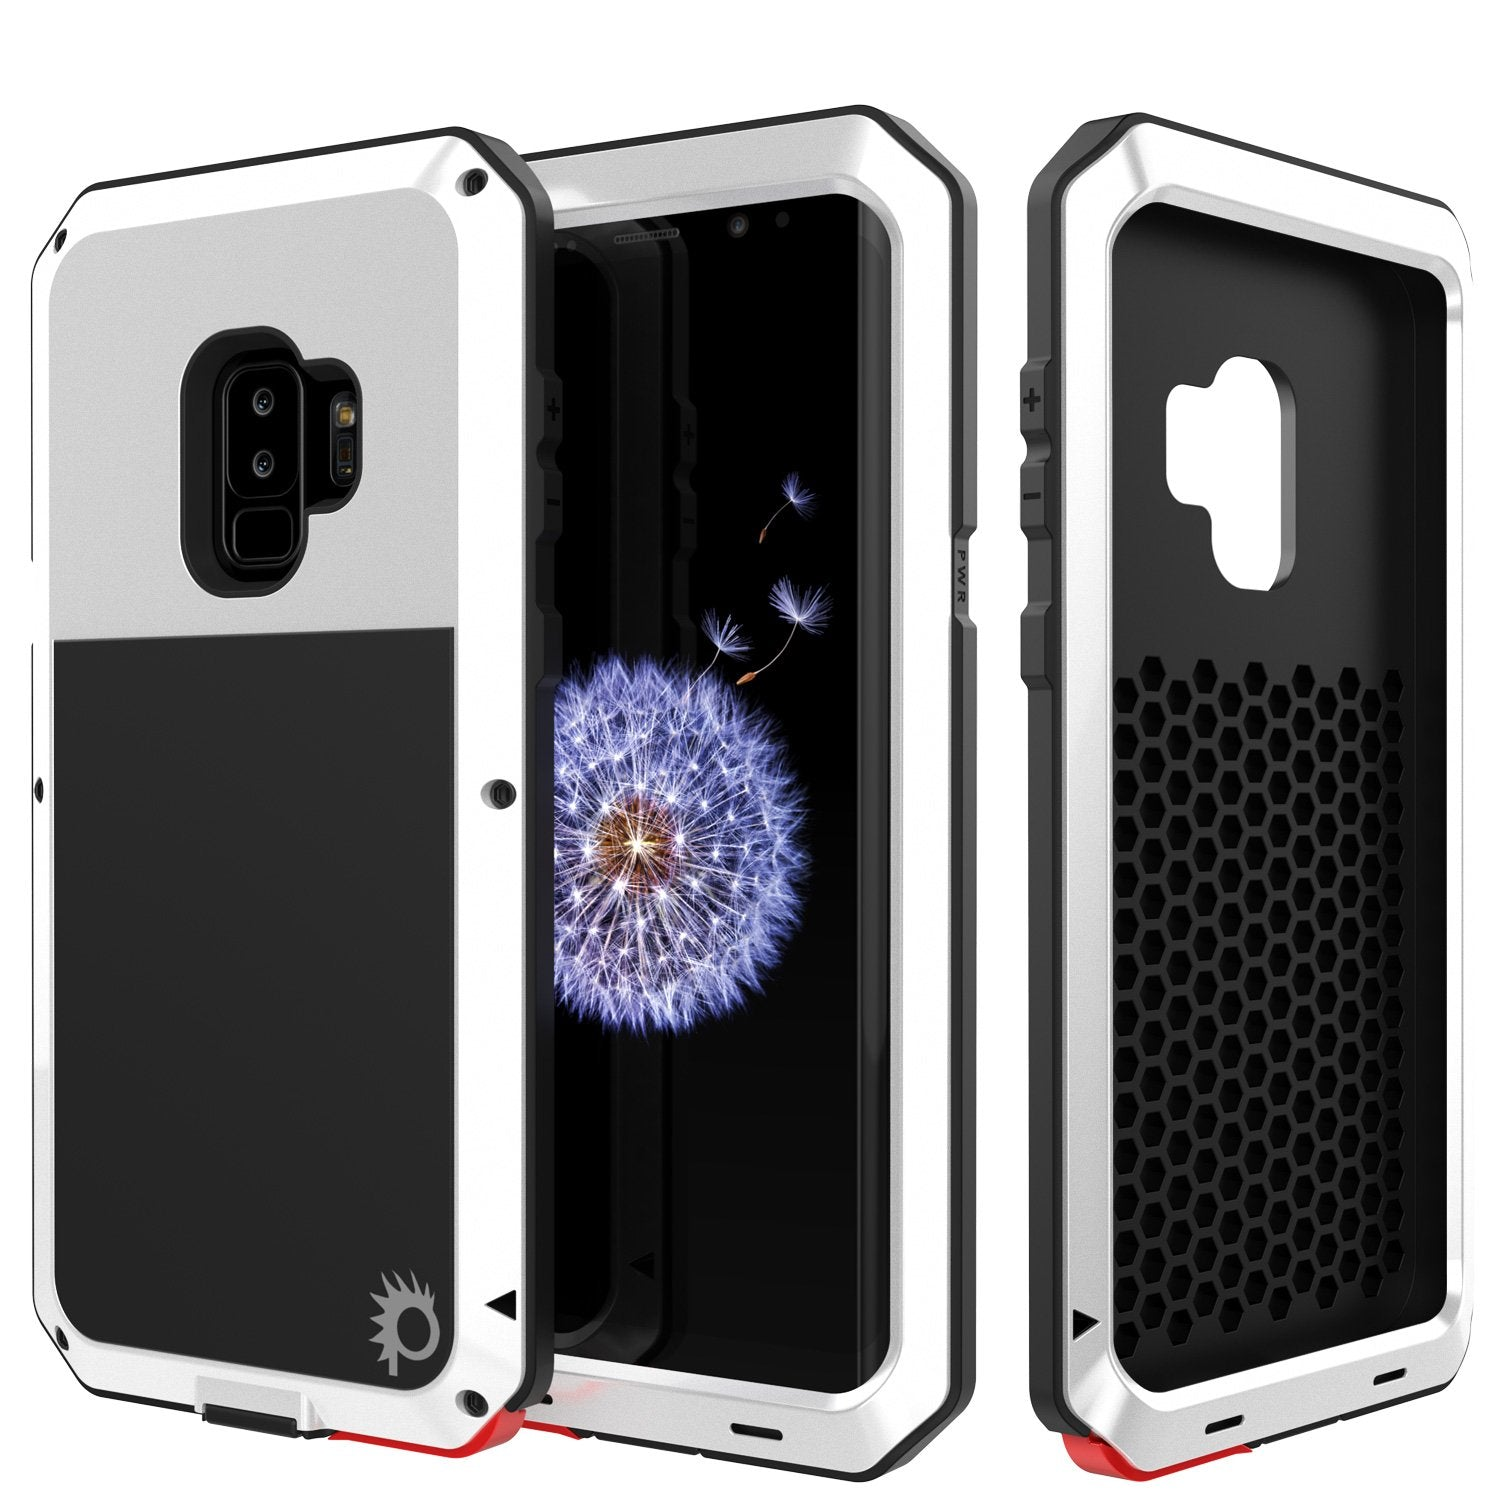 Galaxy S9 Plus Metal Case, Heavy Duty Military Grade Rugged Armor Cover [shock proof] Hybrid Full Body Hard Aluminum & TPU Design [non slip] W/ Prime Drop Protection for Samsung Galaxy S9 Plus [White]